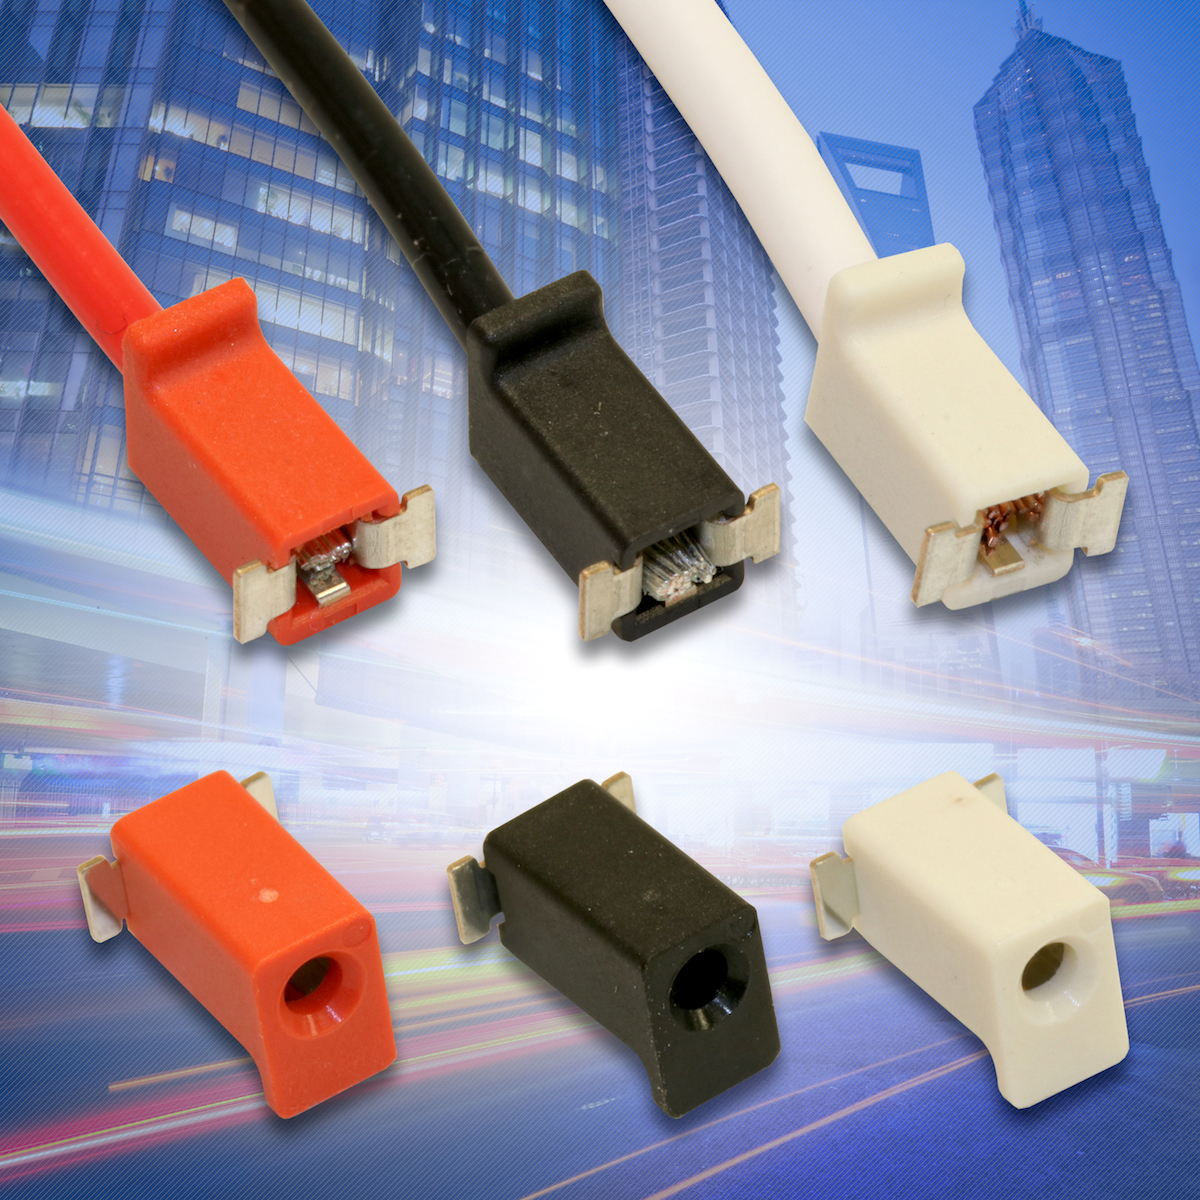 Wire-to-Board Connectors Deliver Simple, Robust, Repeatable, & Cost-Effective Wire Terminations